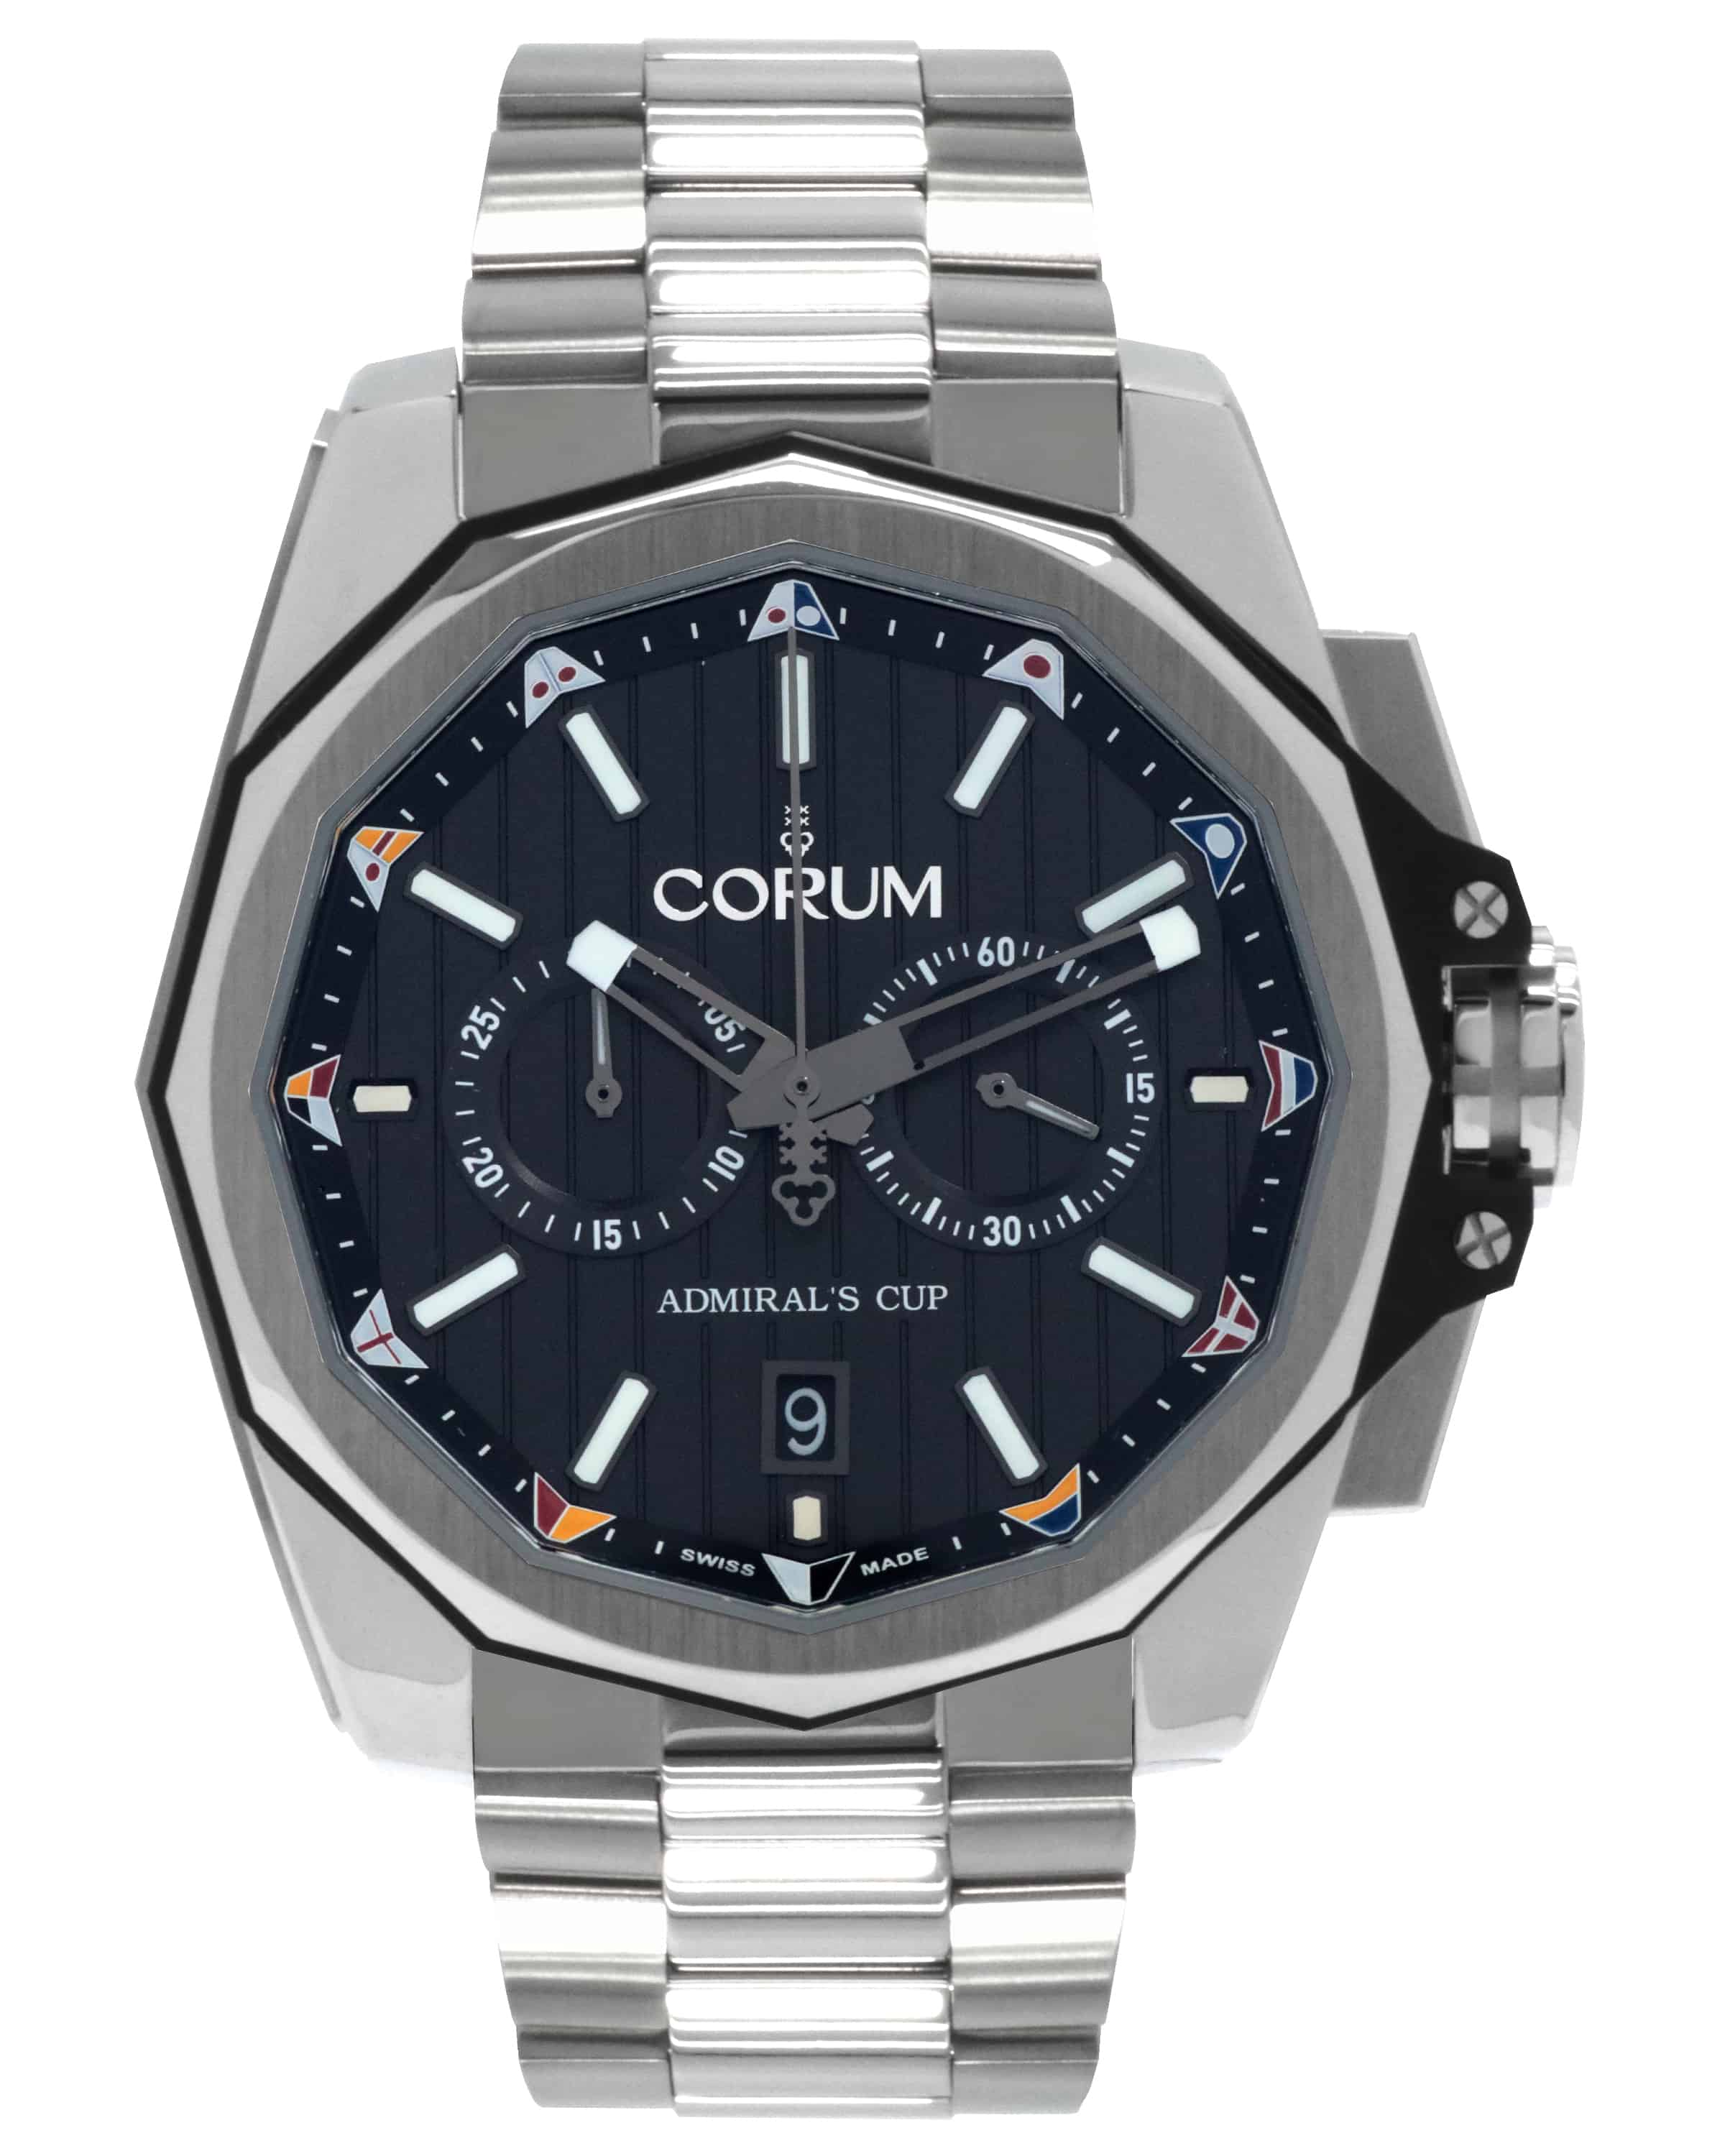 Corum Admiral's Cup AC-one 45 Automatic Chronograph Watch w/ Ti Bracelet  $3199 + free s/h